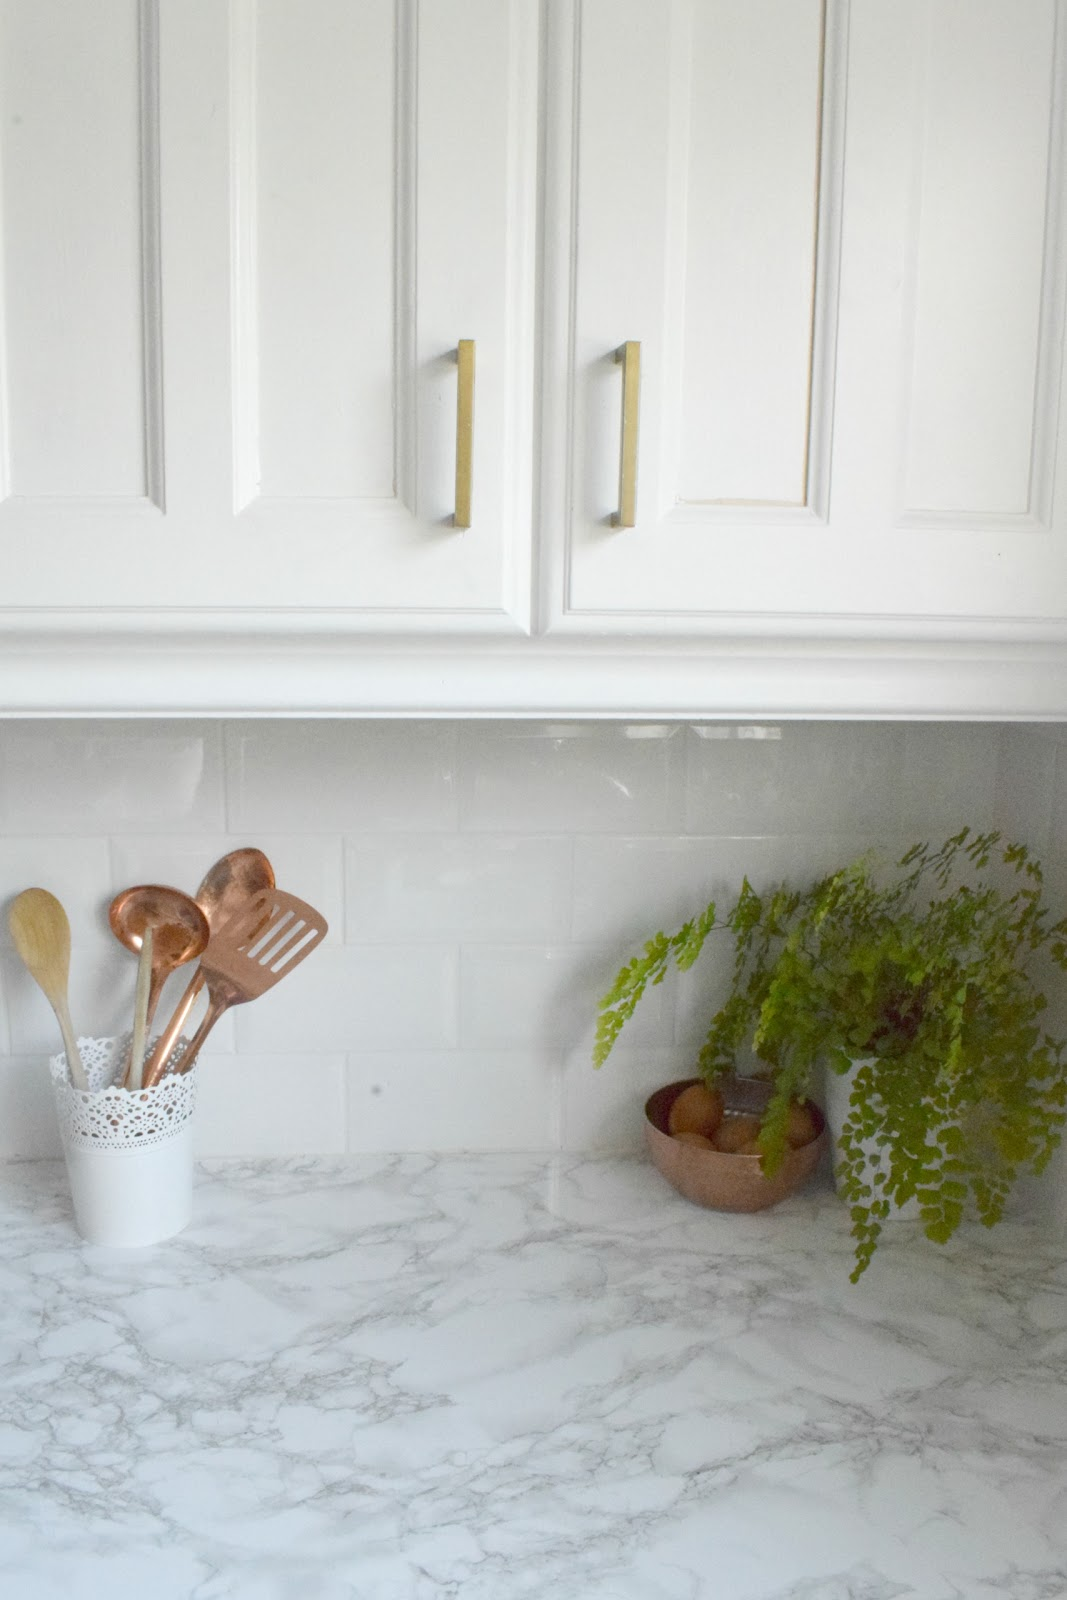 7 Ways To Redo Your Countertops Without Replacing Them the handy mano manomano mano diy do it yourself projects home improvement kitchen makeover transformation counter top marble contact paper